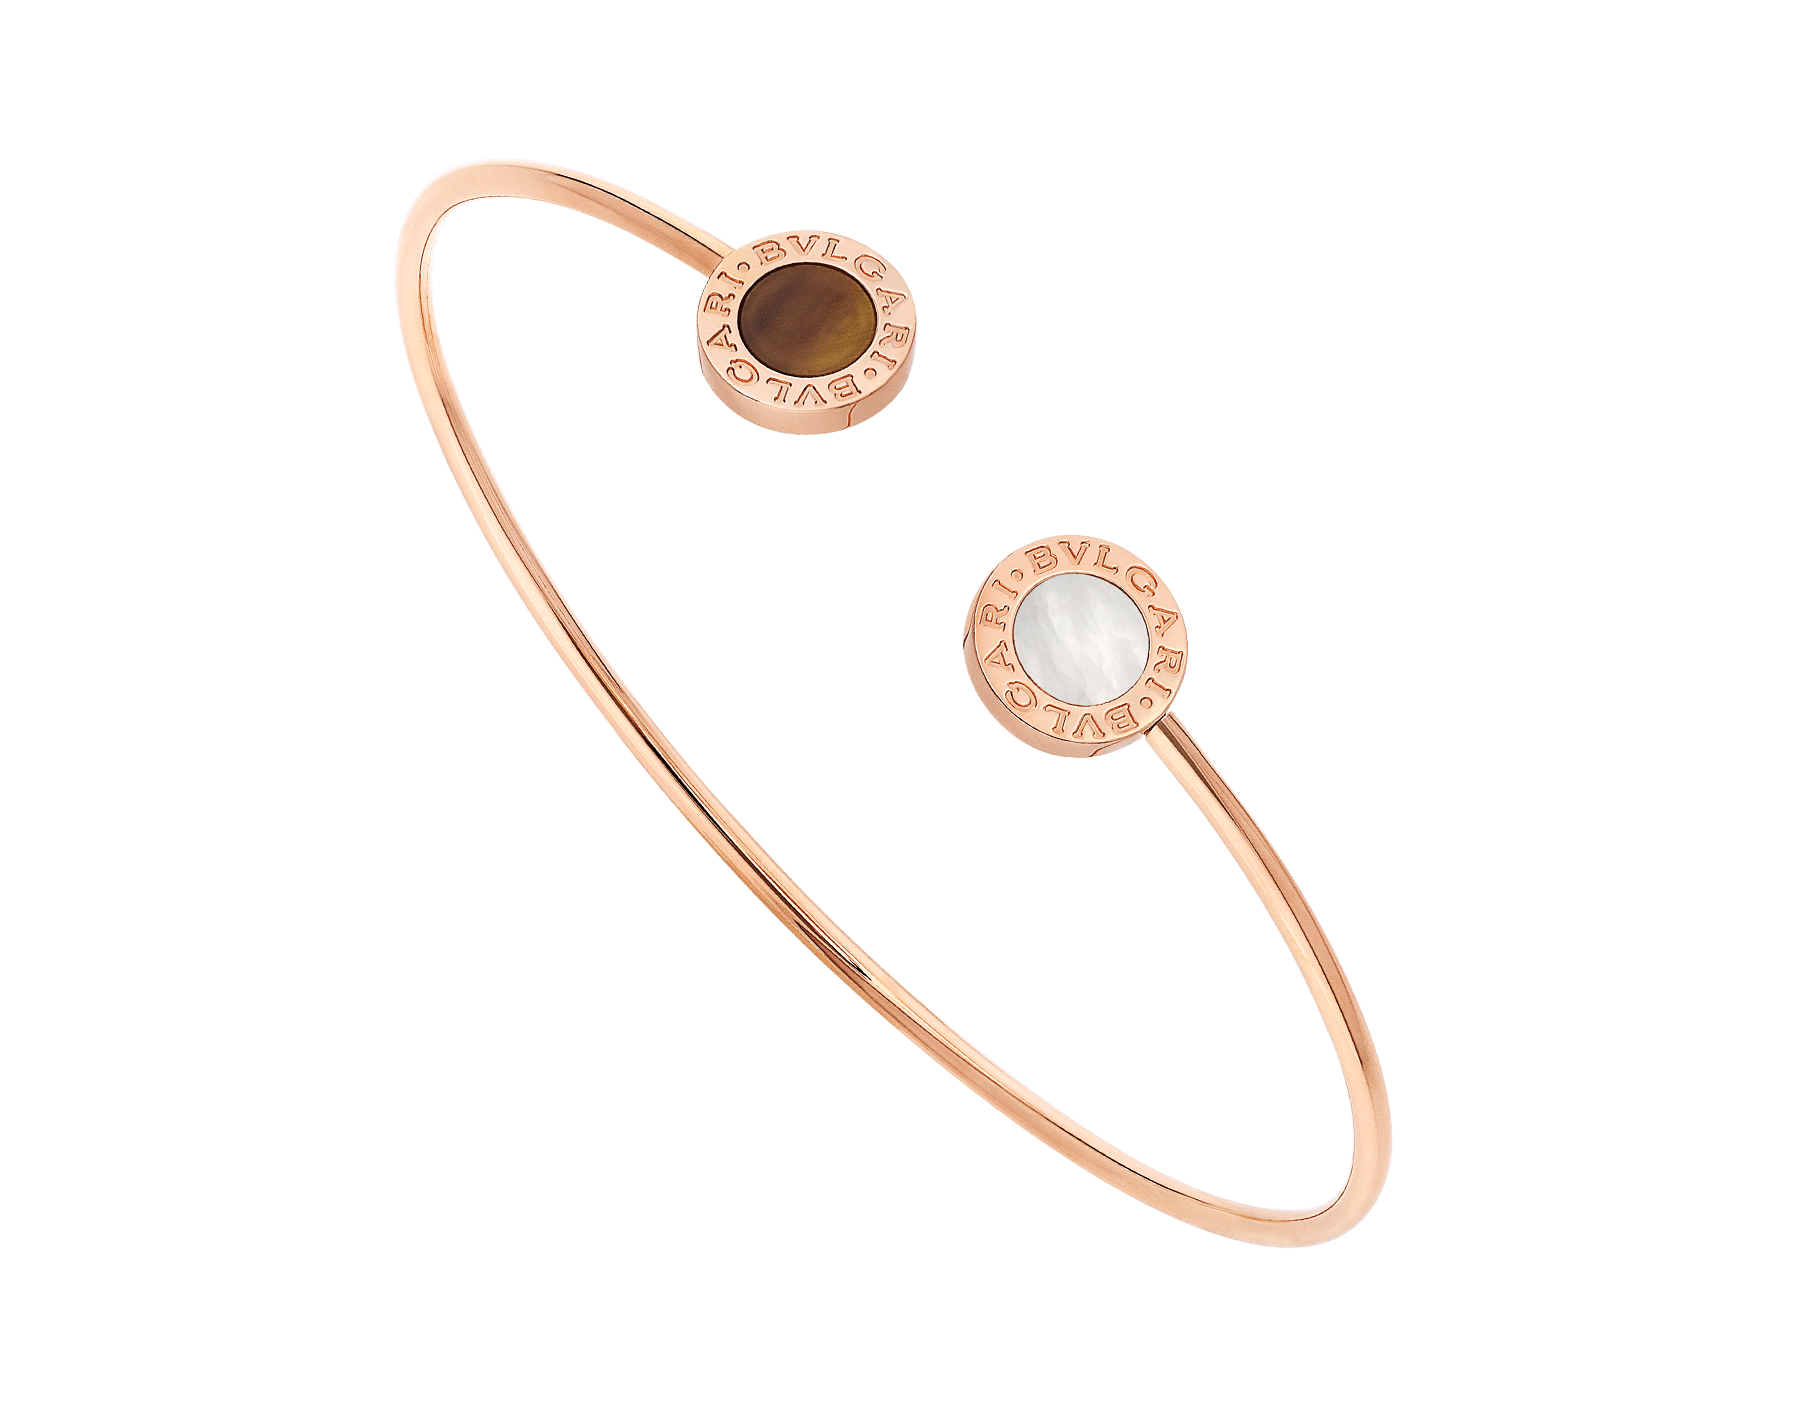 BVLGARI BVLGARI 18 kt rose gold bracelet set with mother-of-pearl and tiger's eye elements BR858623 image 1